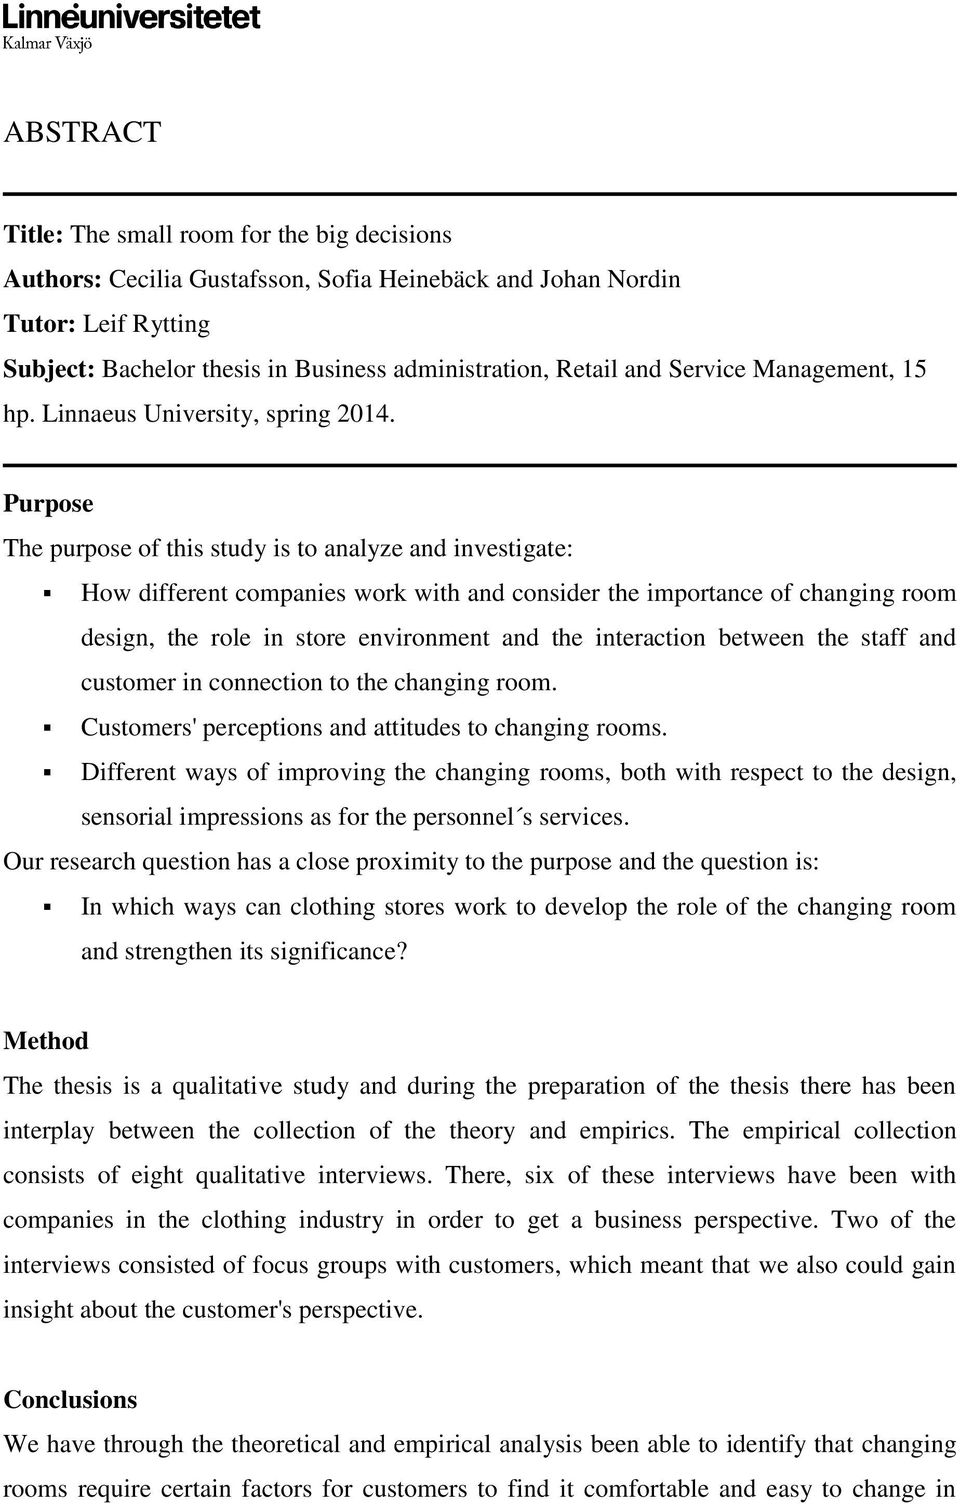 Purpose The purpose of this study is to analyze and investigate: How different companies work with and consider the importance of changing room design, the role in store environment and the